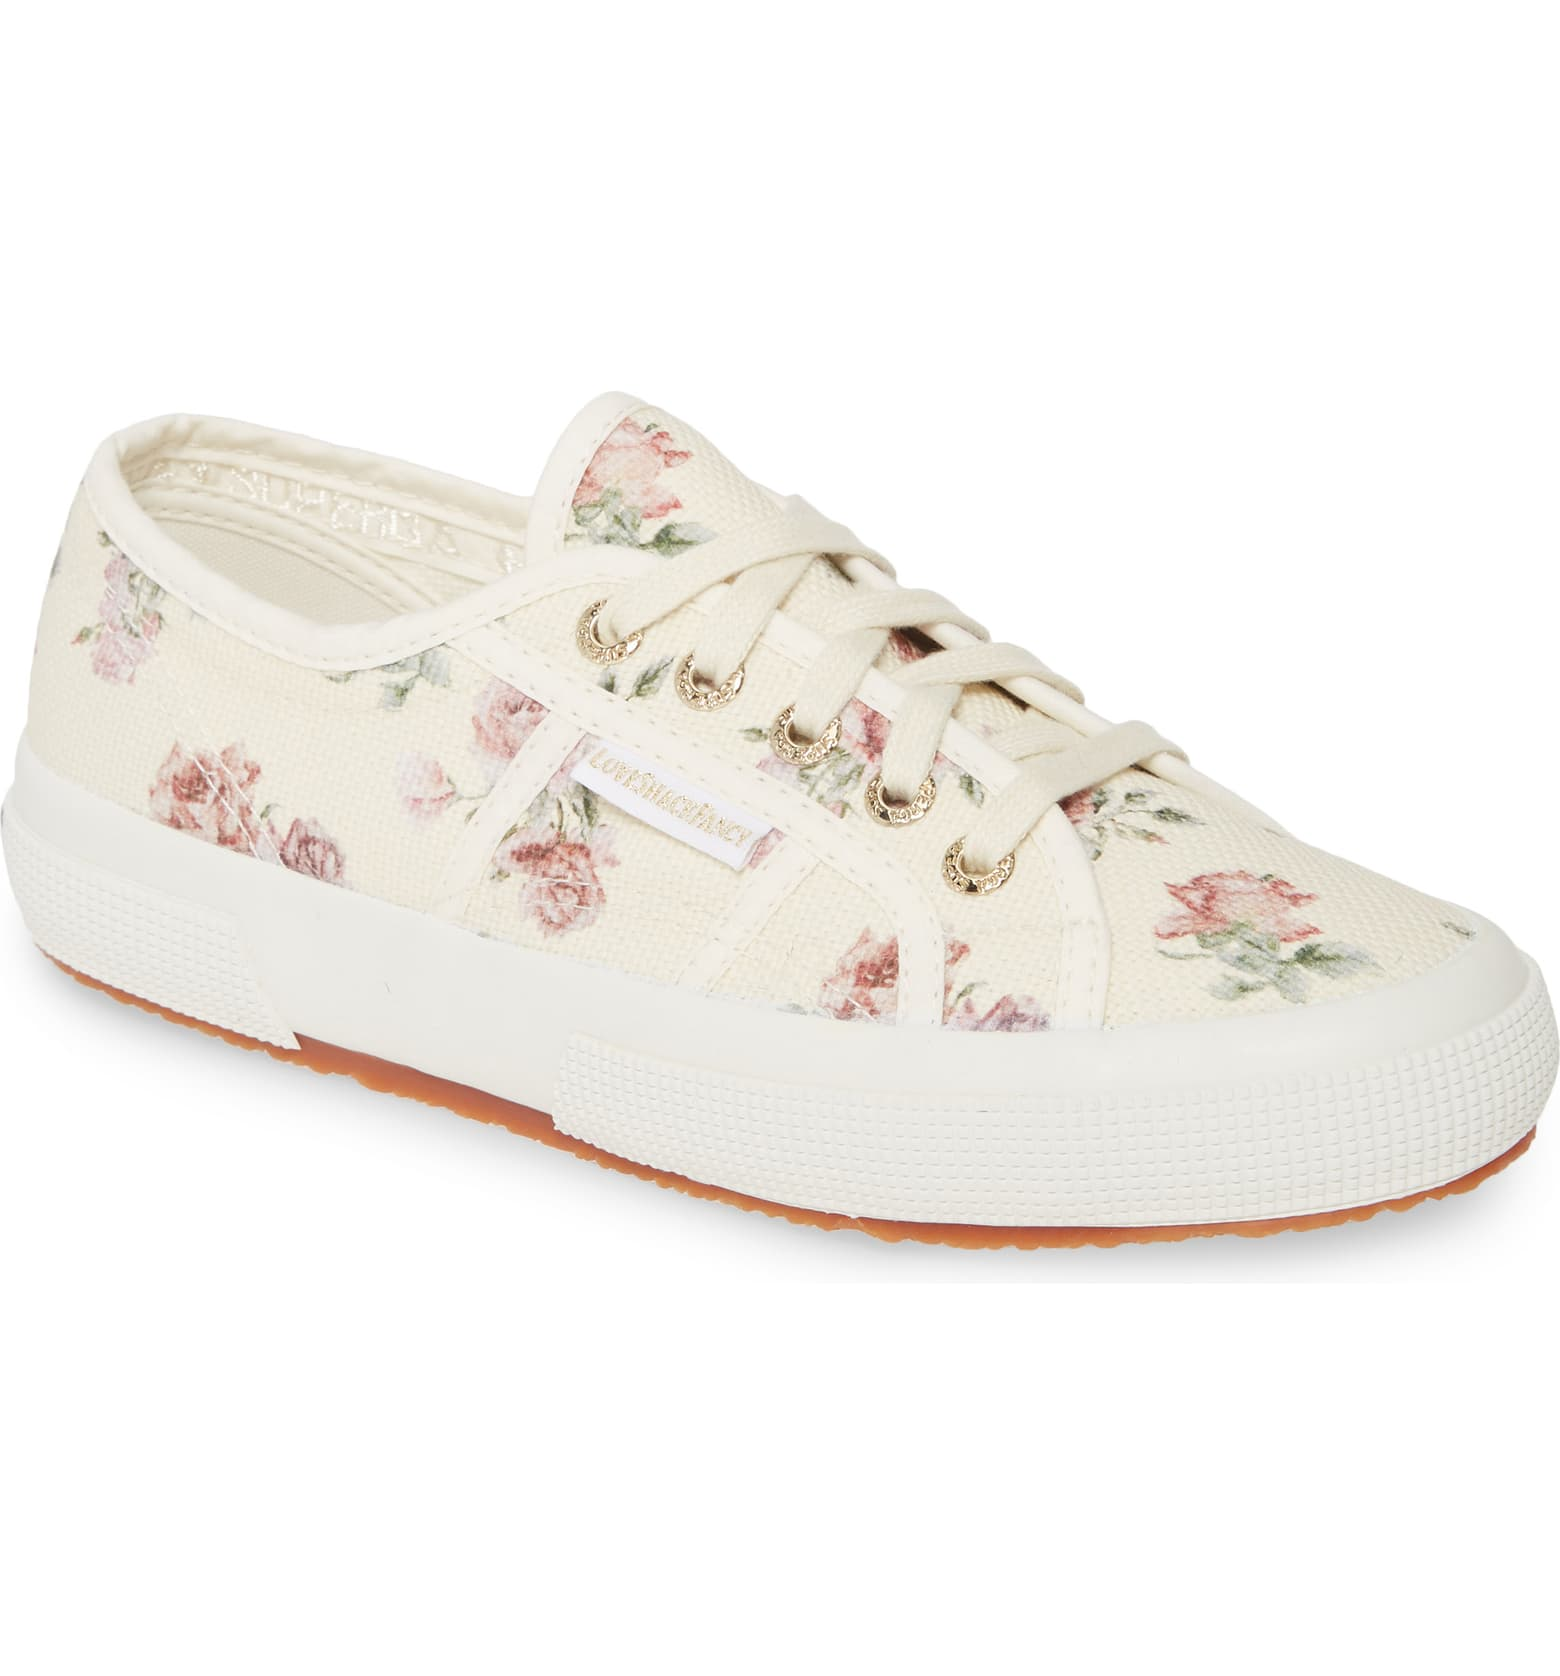 SUPERGA 2750 Fancotw Sneaker, The Perfectly Feminine Sneakers